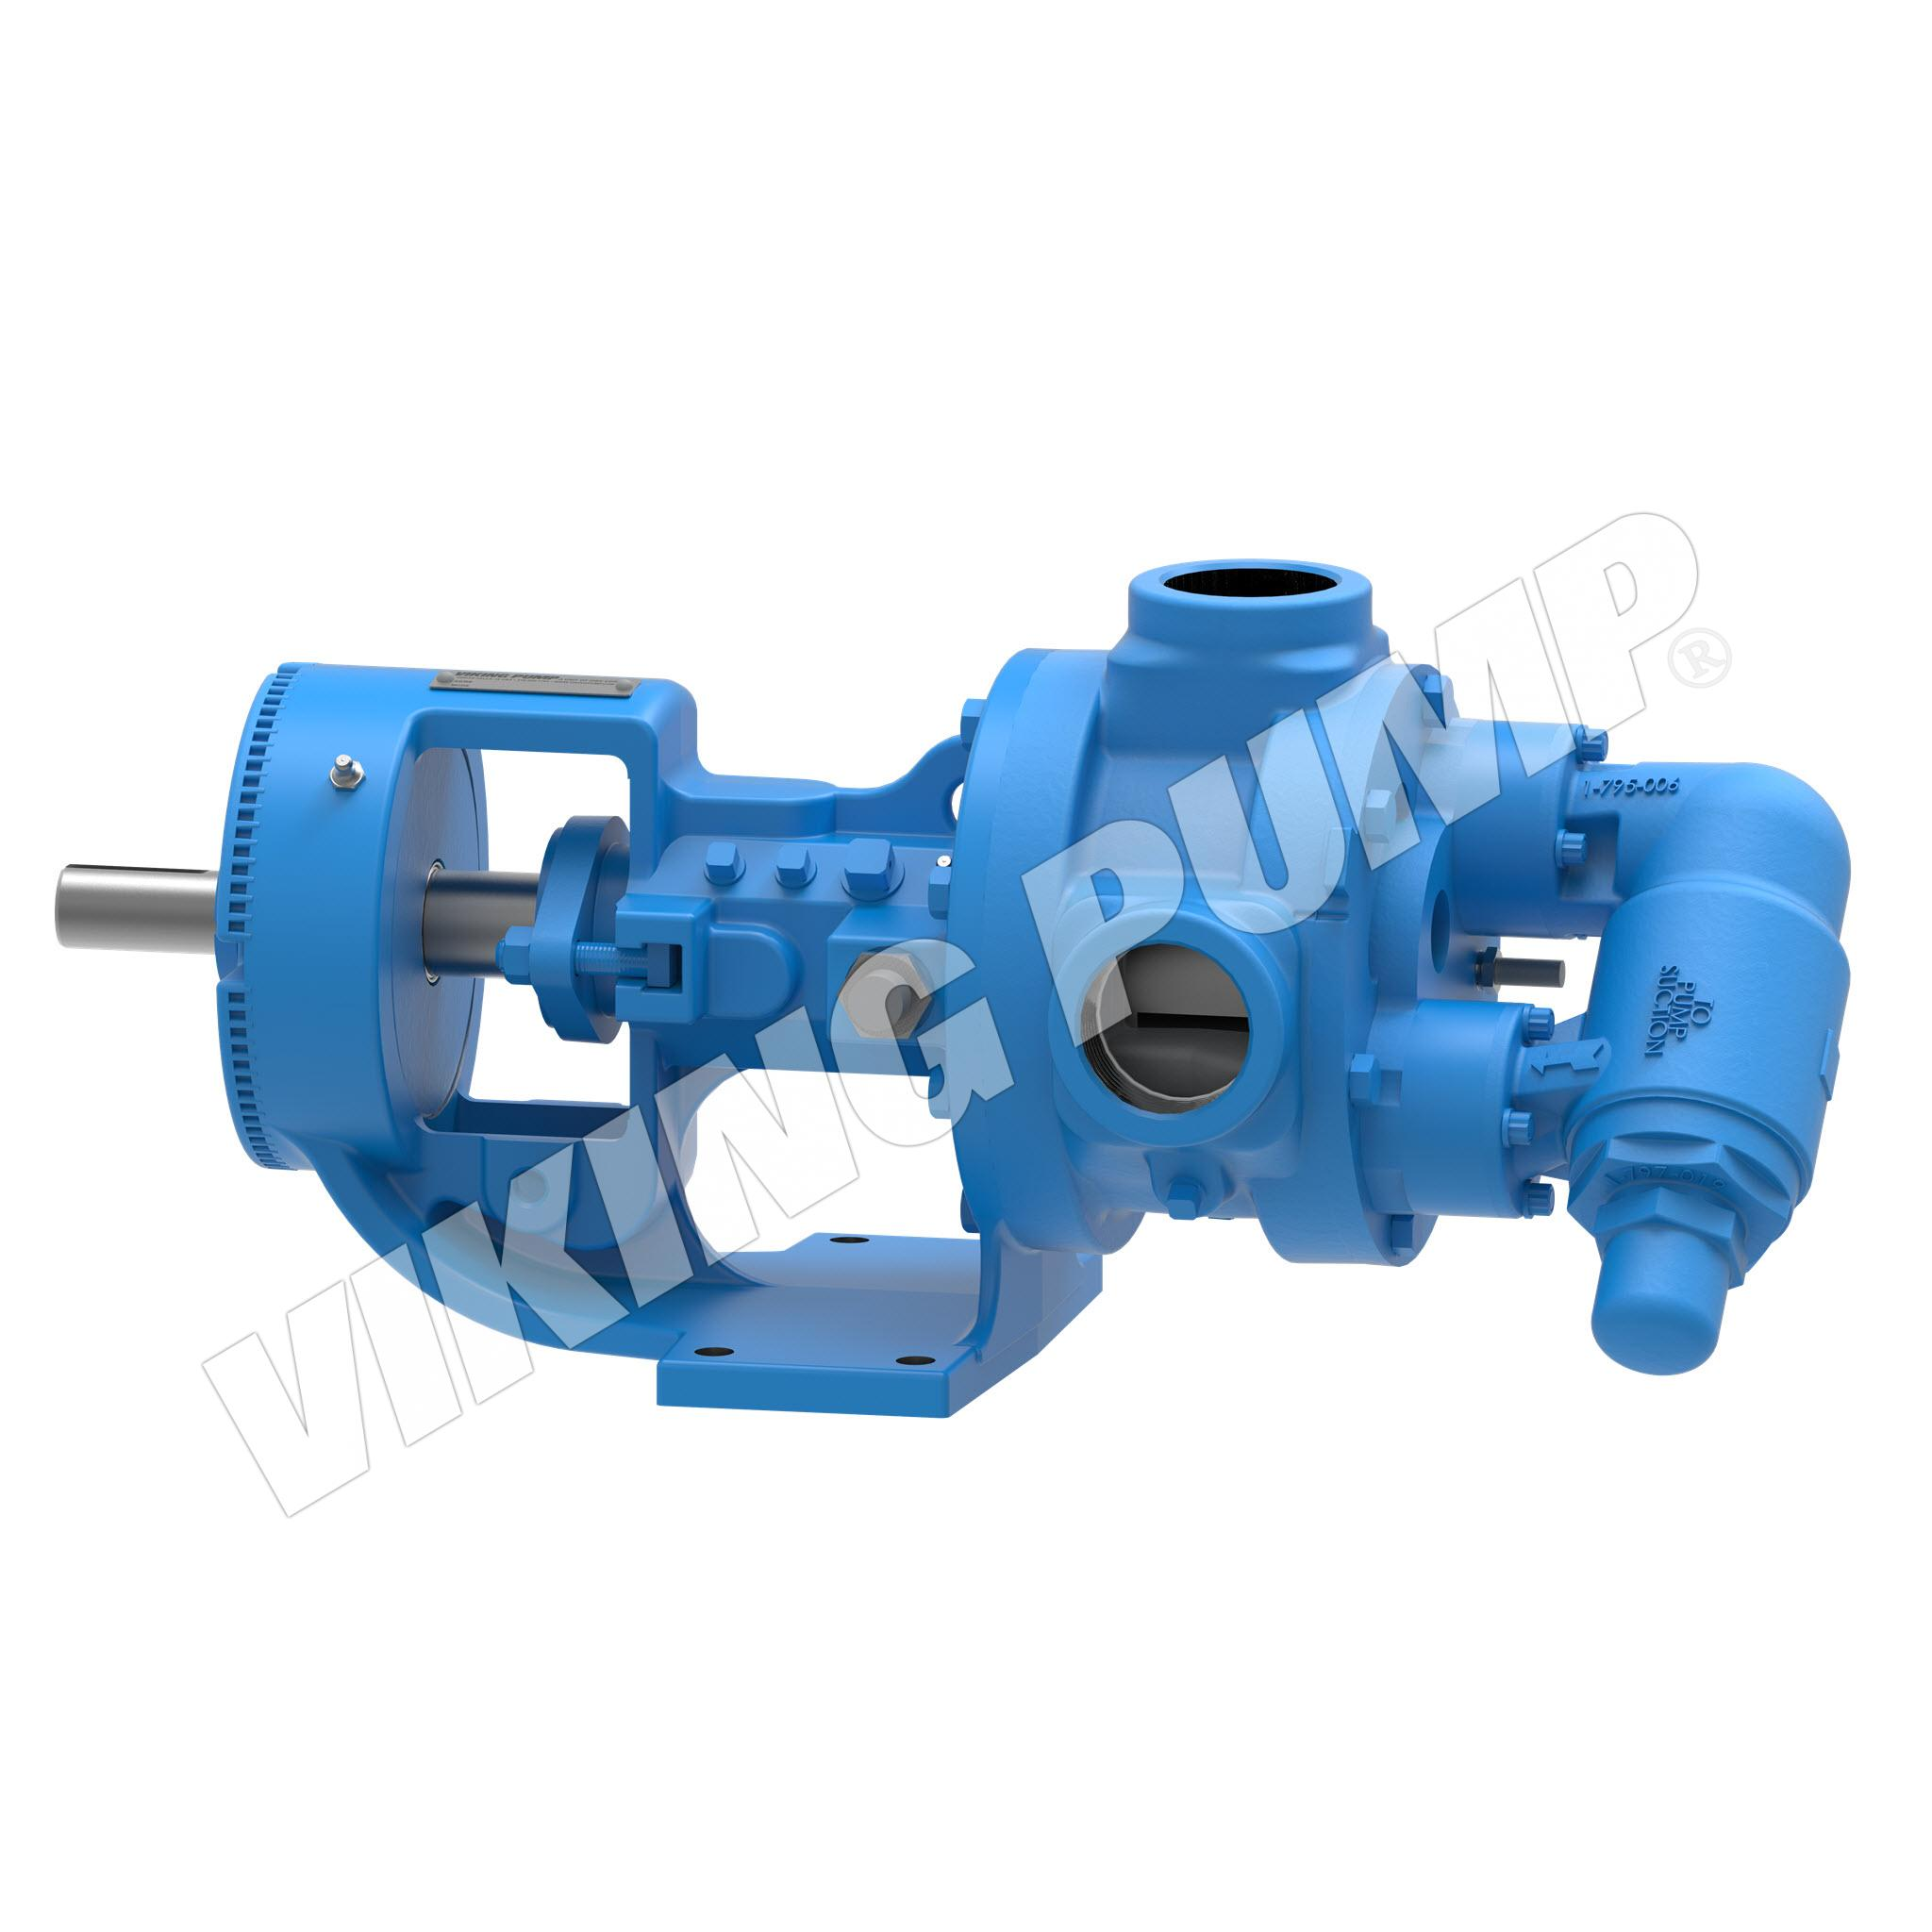 Model KK124E, Foot-Mounted, Electrically-Heated, Relief Valve Pump